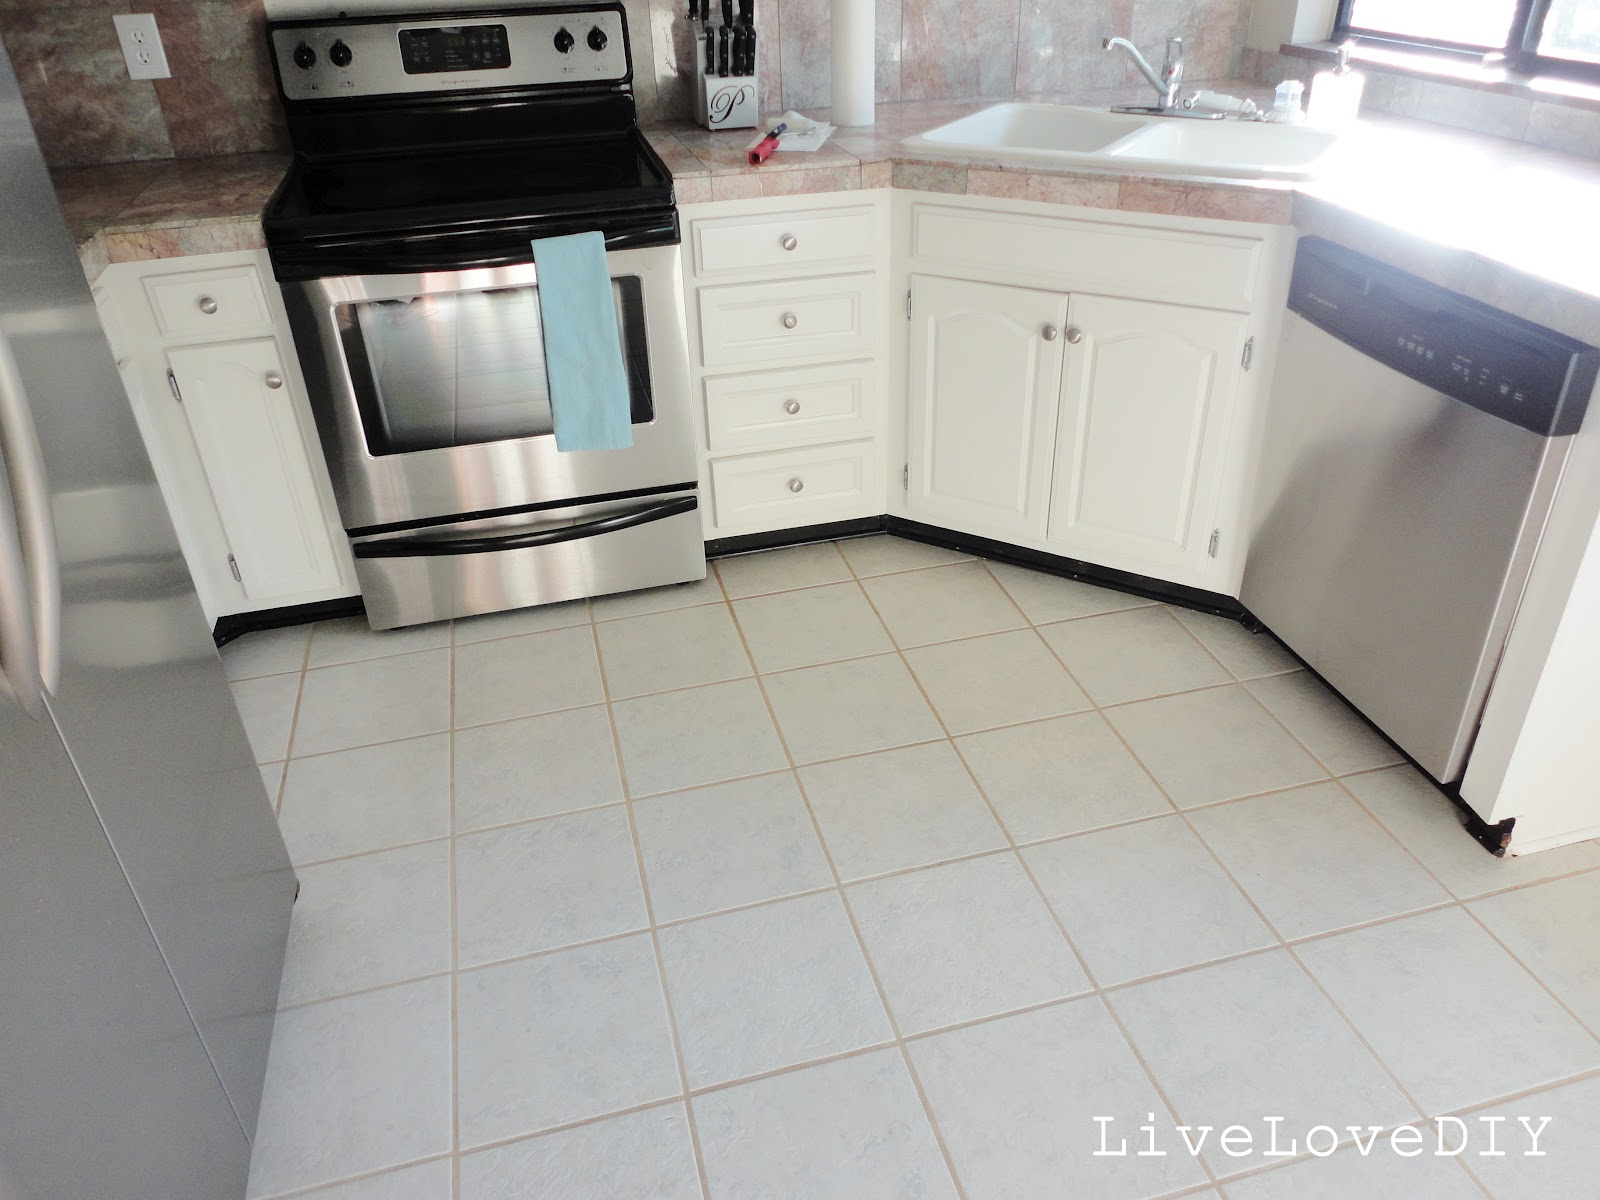 Livelovediy how to restore dirty tile grout how to restore dirty tile grout dailygadgetfo Images